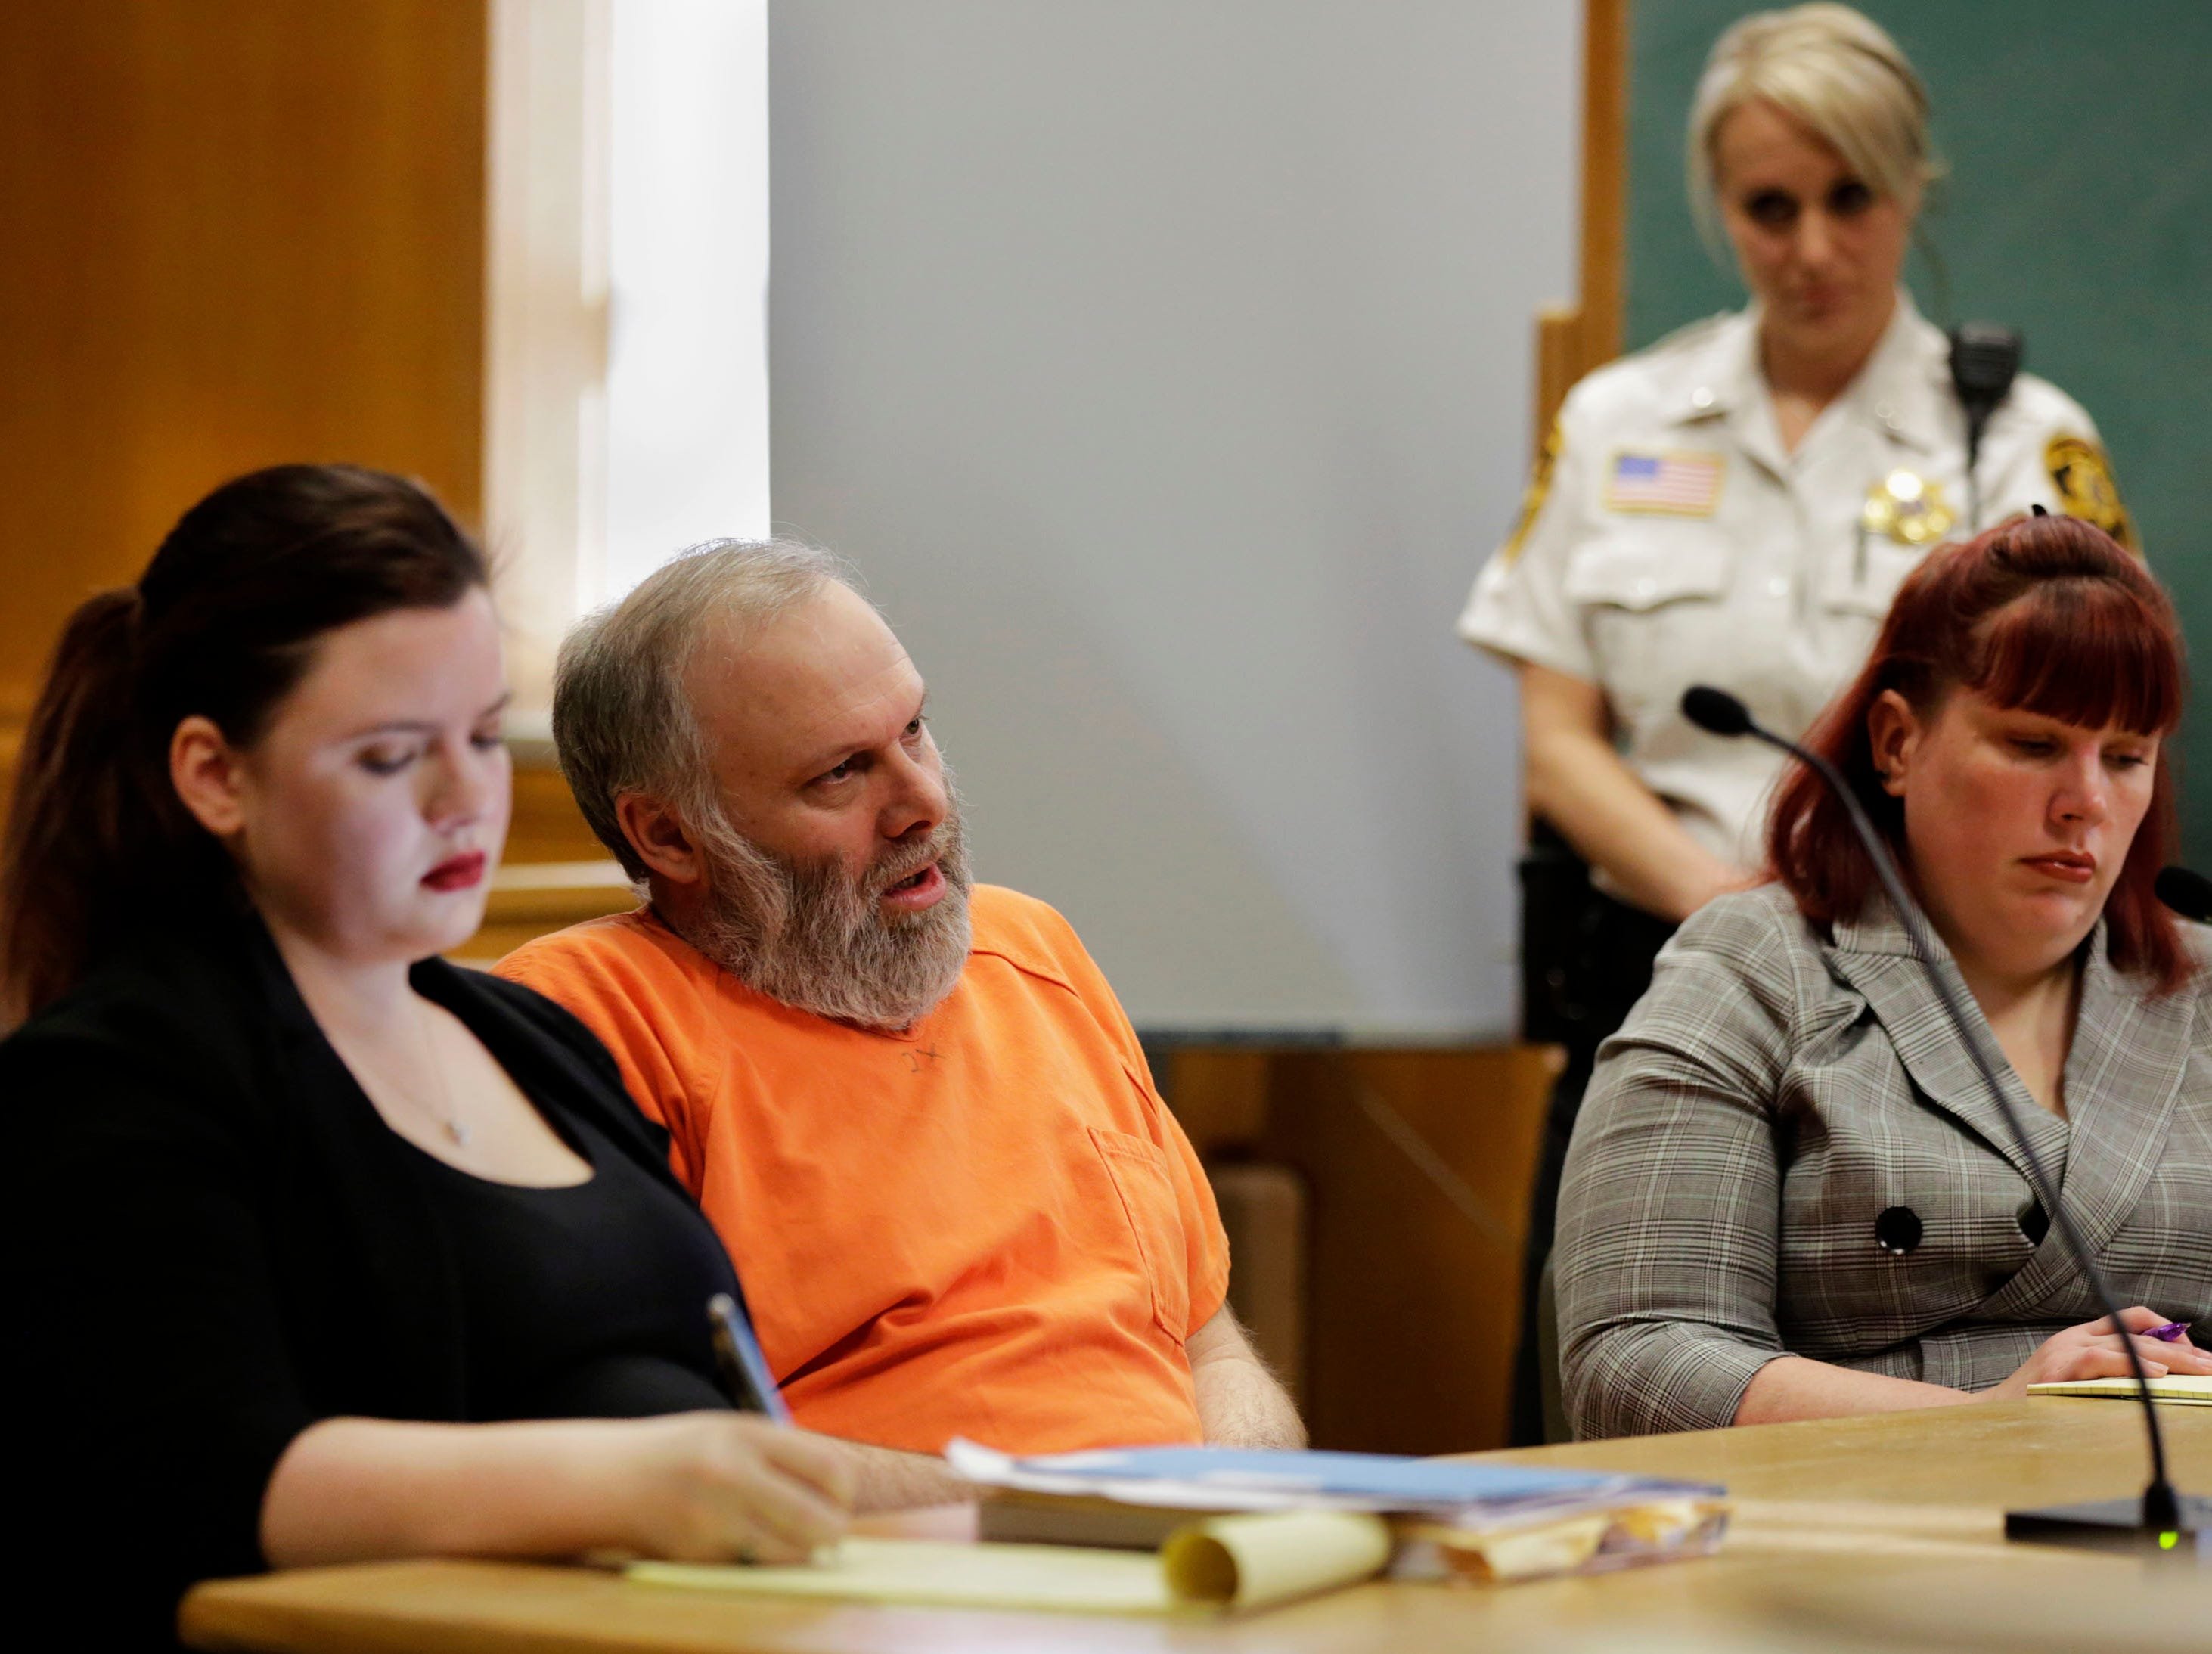 Defendant Gary Bohman addresses the court during a sentencing hearing on Tuesday, December 18, 2018, at the Wood County courthouse in Wisconsin Rapids, Wis. Bohman was sentenced to life in prison with no possibility of parole for the murder of Christopher Race.Tork Mason/USA TODAY NETWORK-Wisconsin